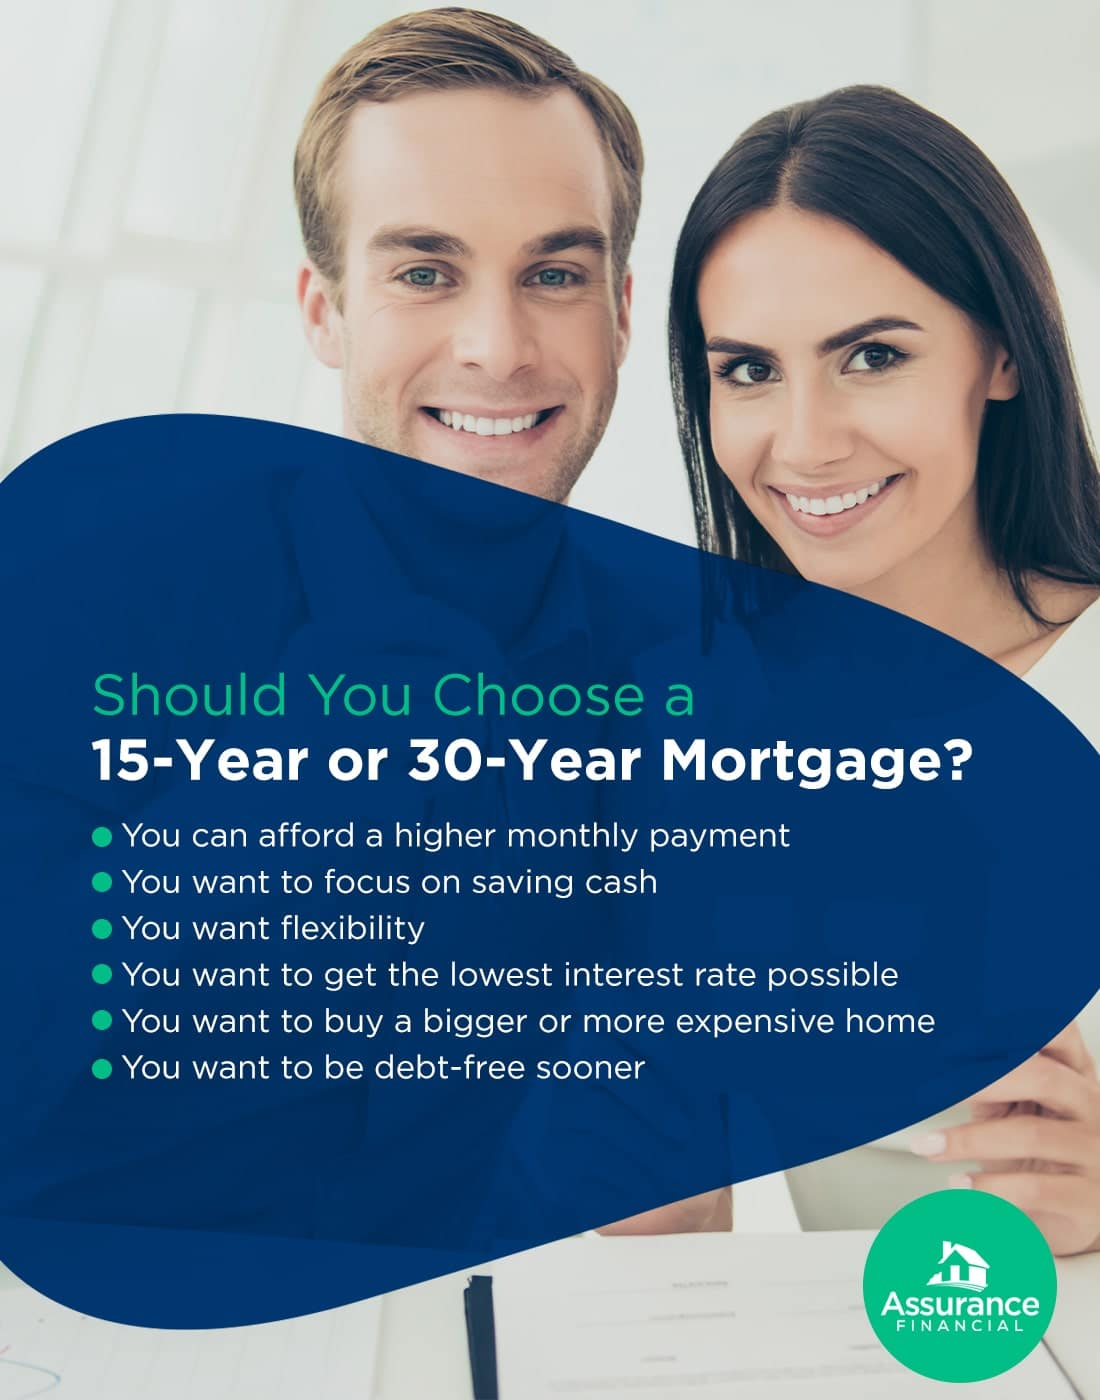 Should You Choose a 15-Year or 30-Year Mortgage infographic